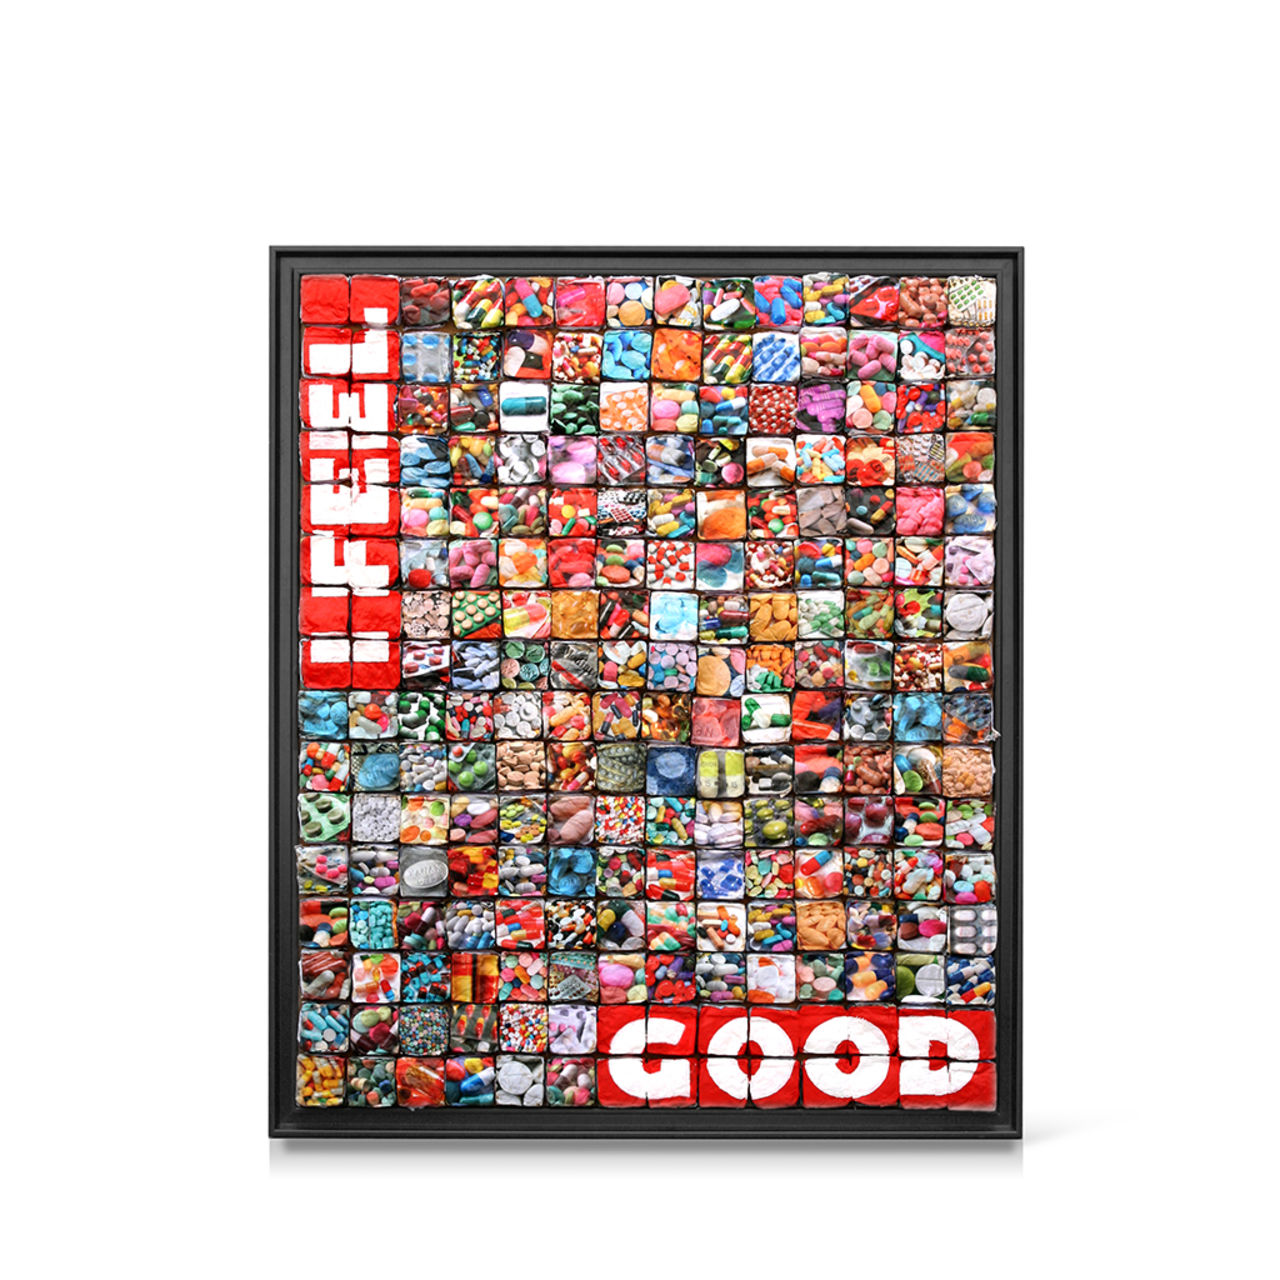 jean-michel buche 96 - I feel good. 110X130cm